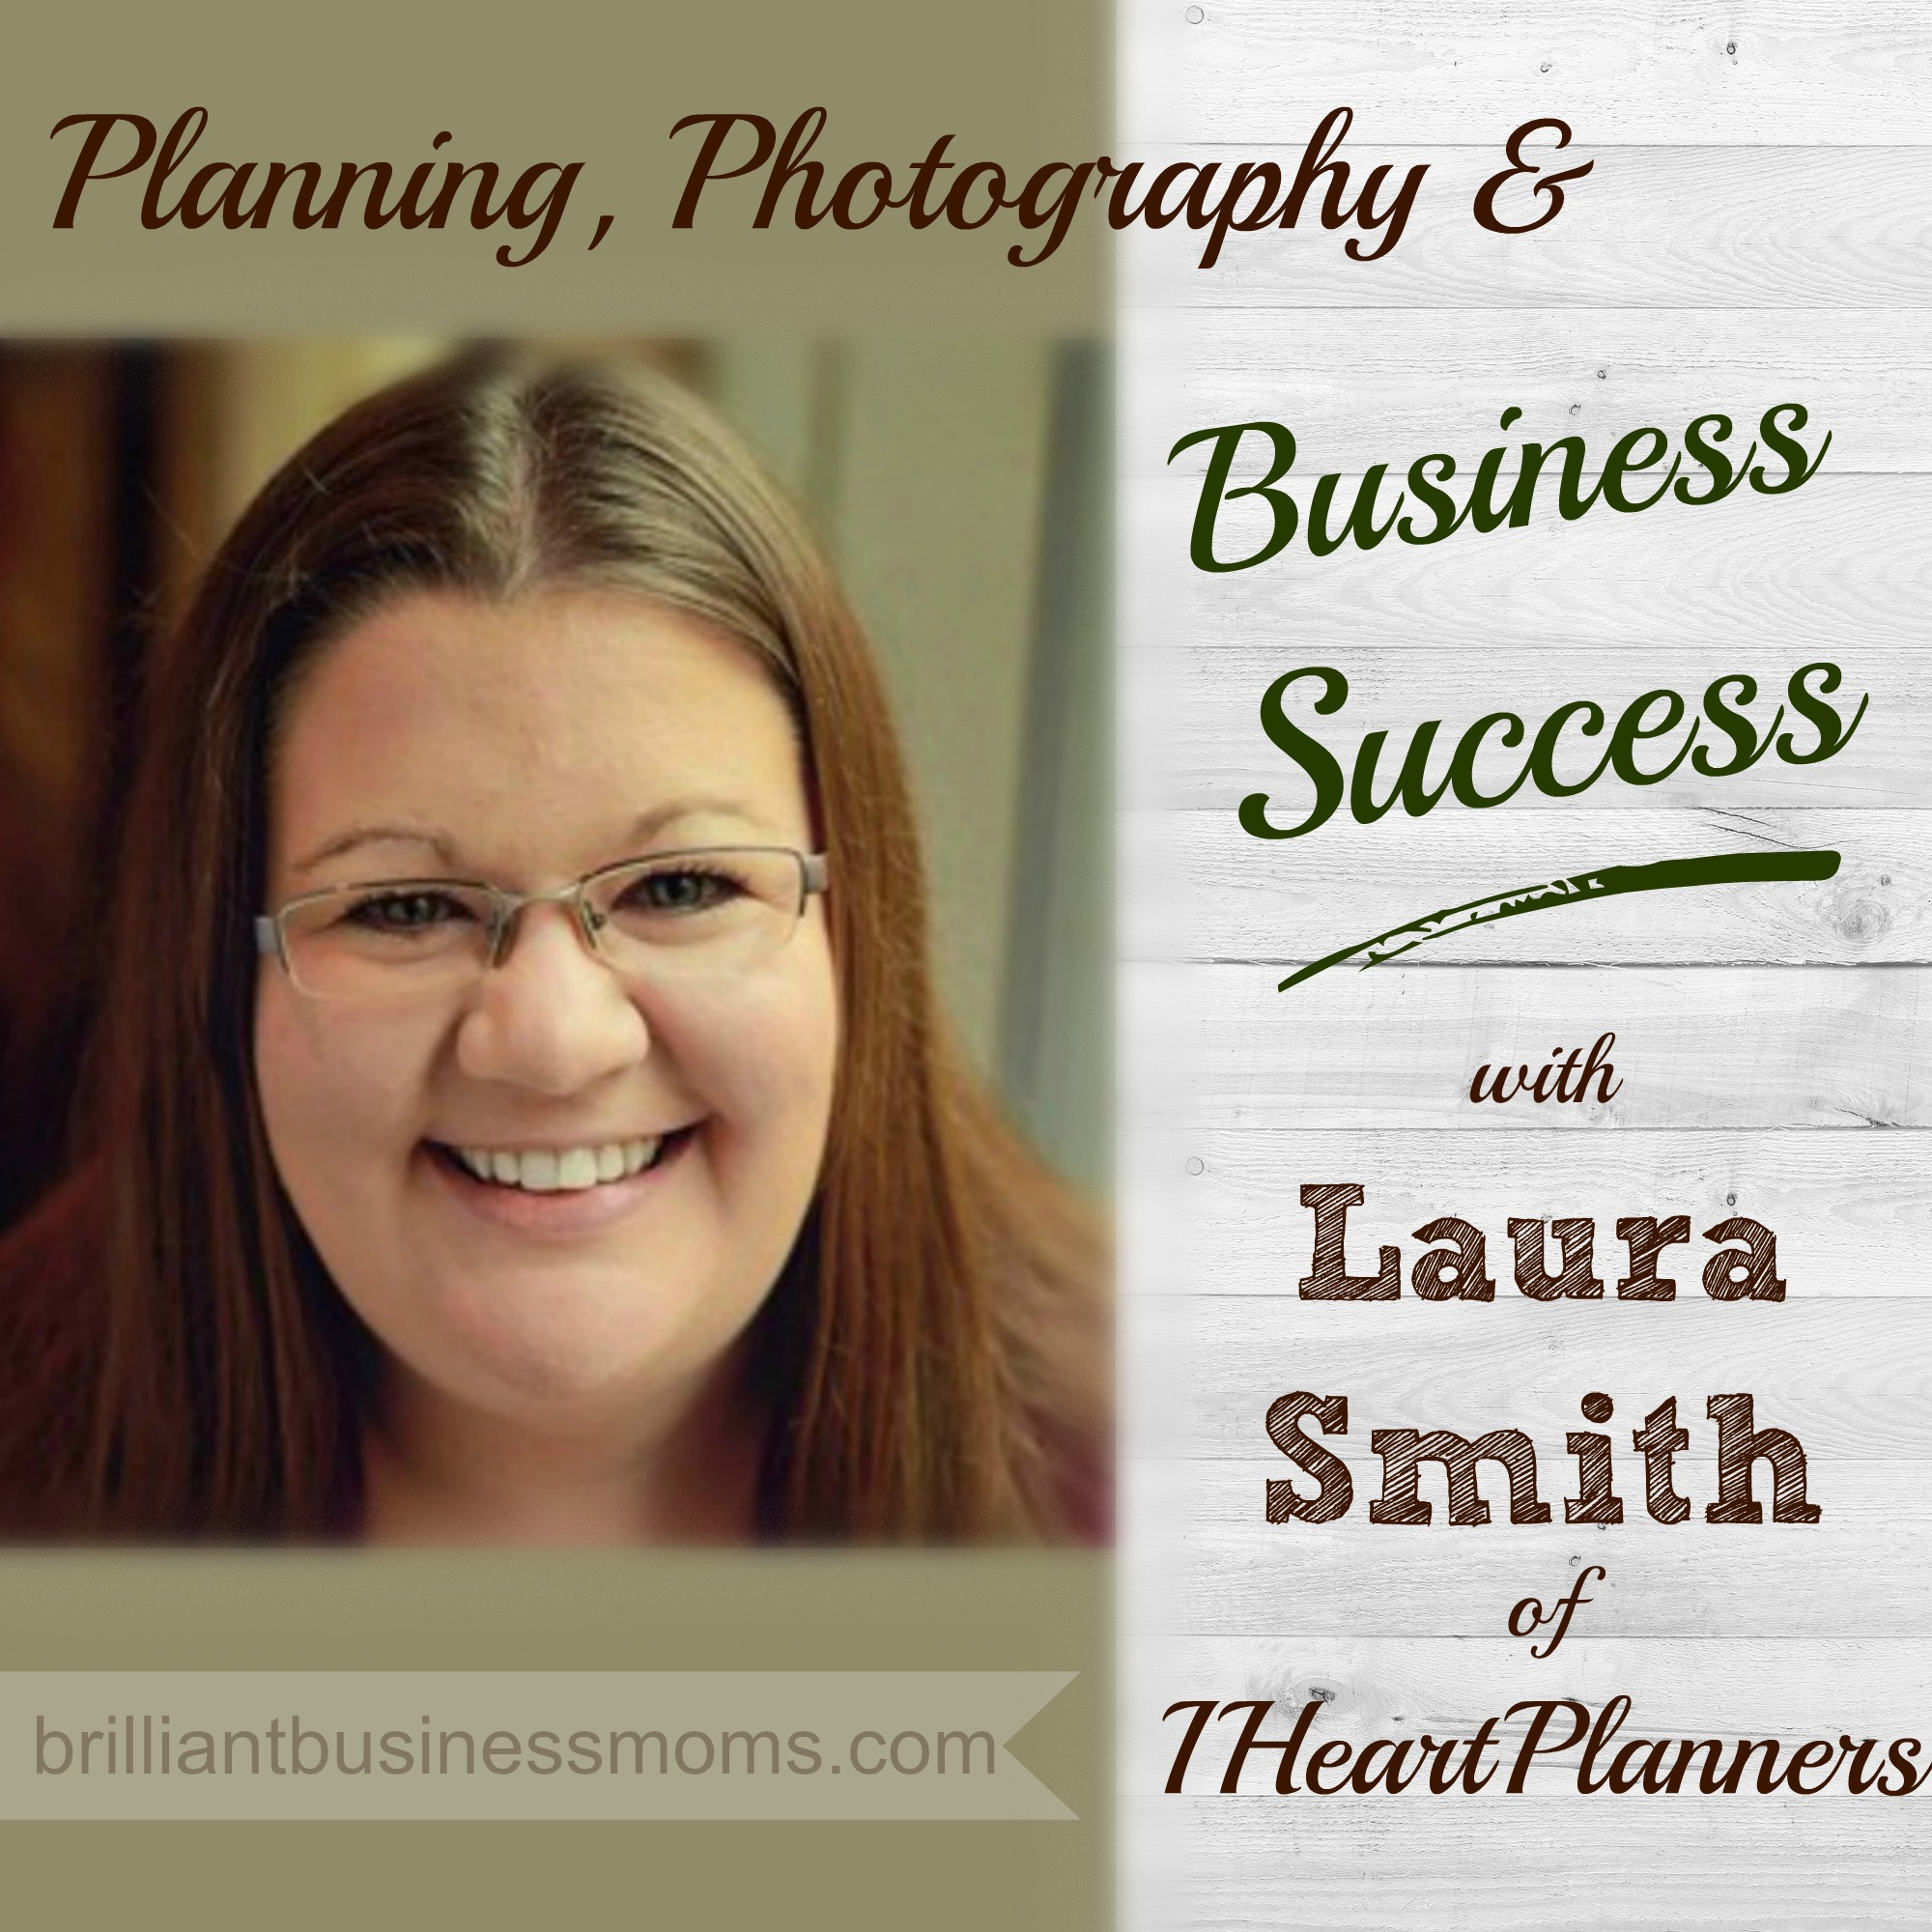 Learn from New Mom Entrepreneur Laura Smith of IHeartPlanners.com. Laura makes a living designing and selling planners, planner kits, and blogging. Hear her great tips on product photos, staying focused, and email newsletters.